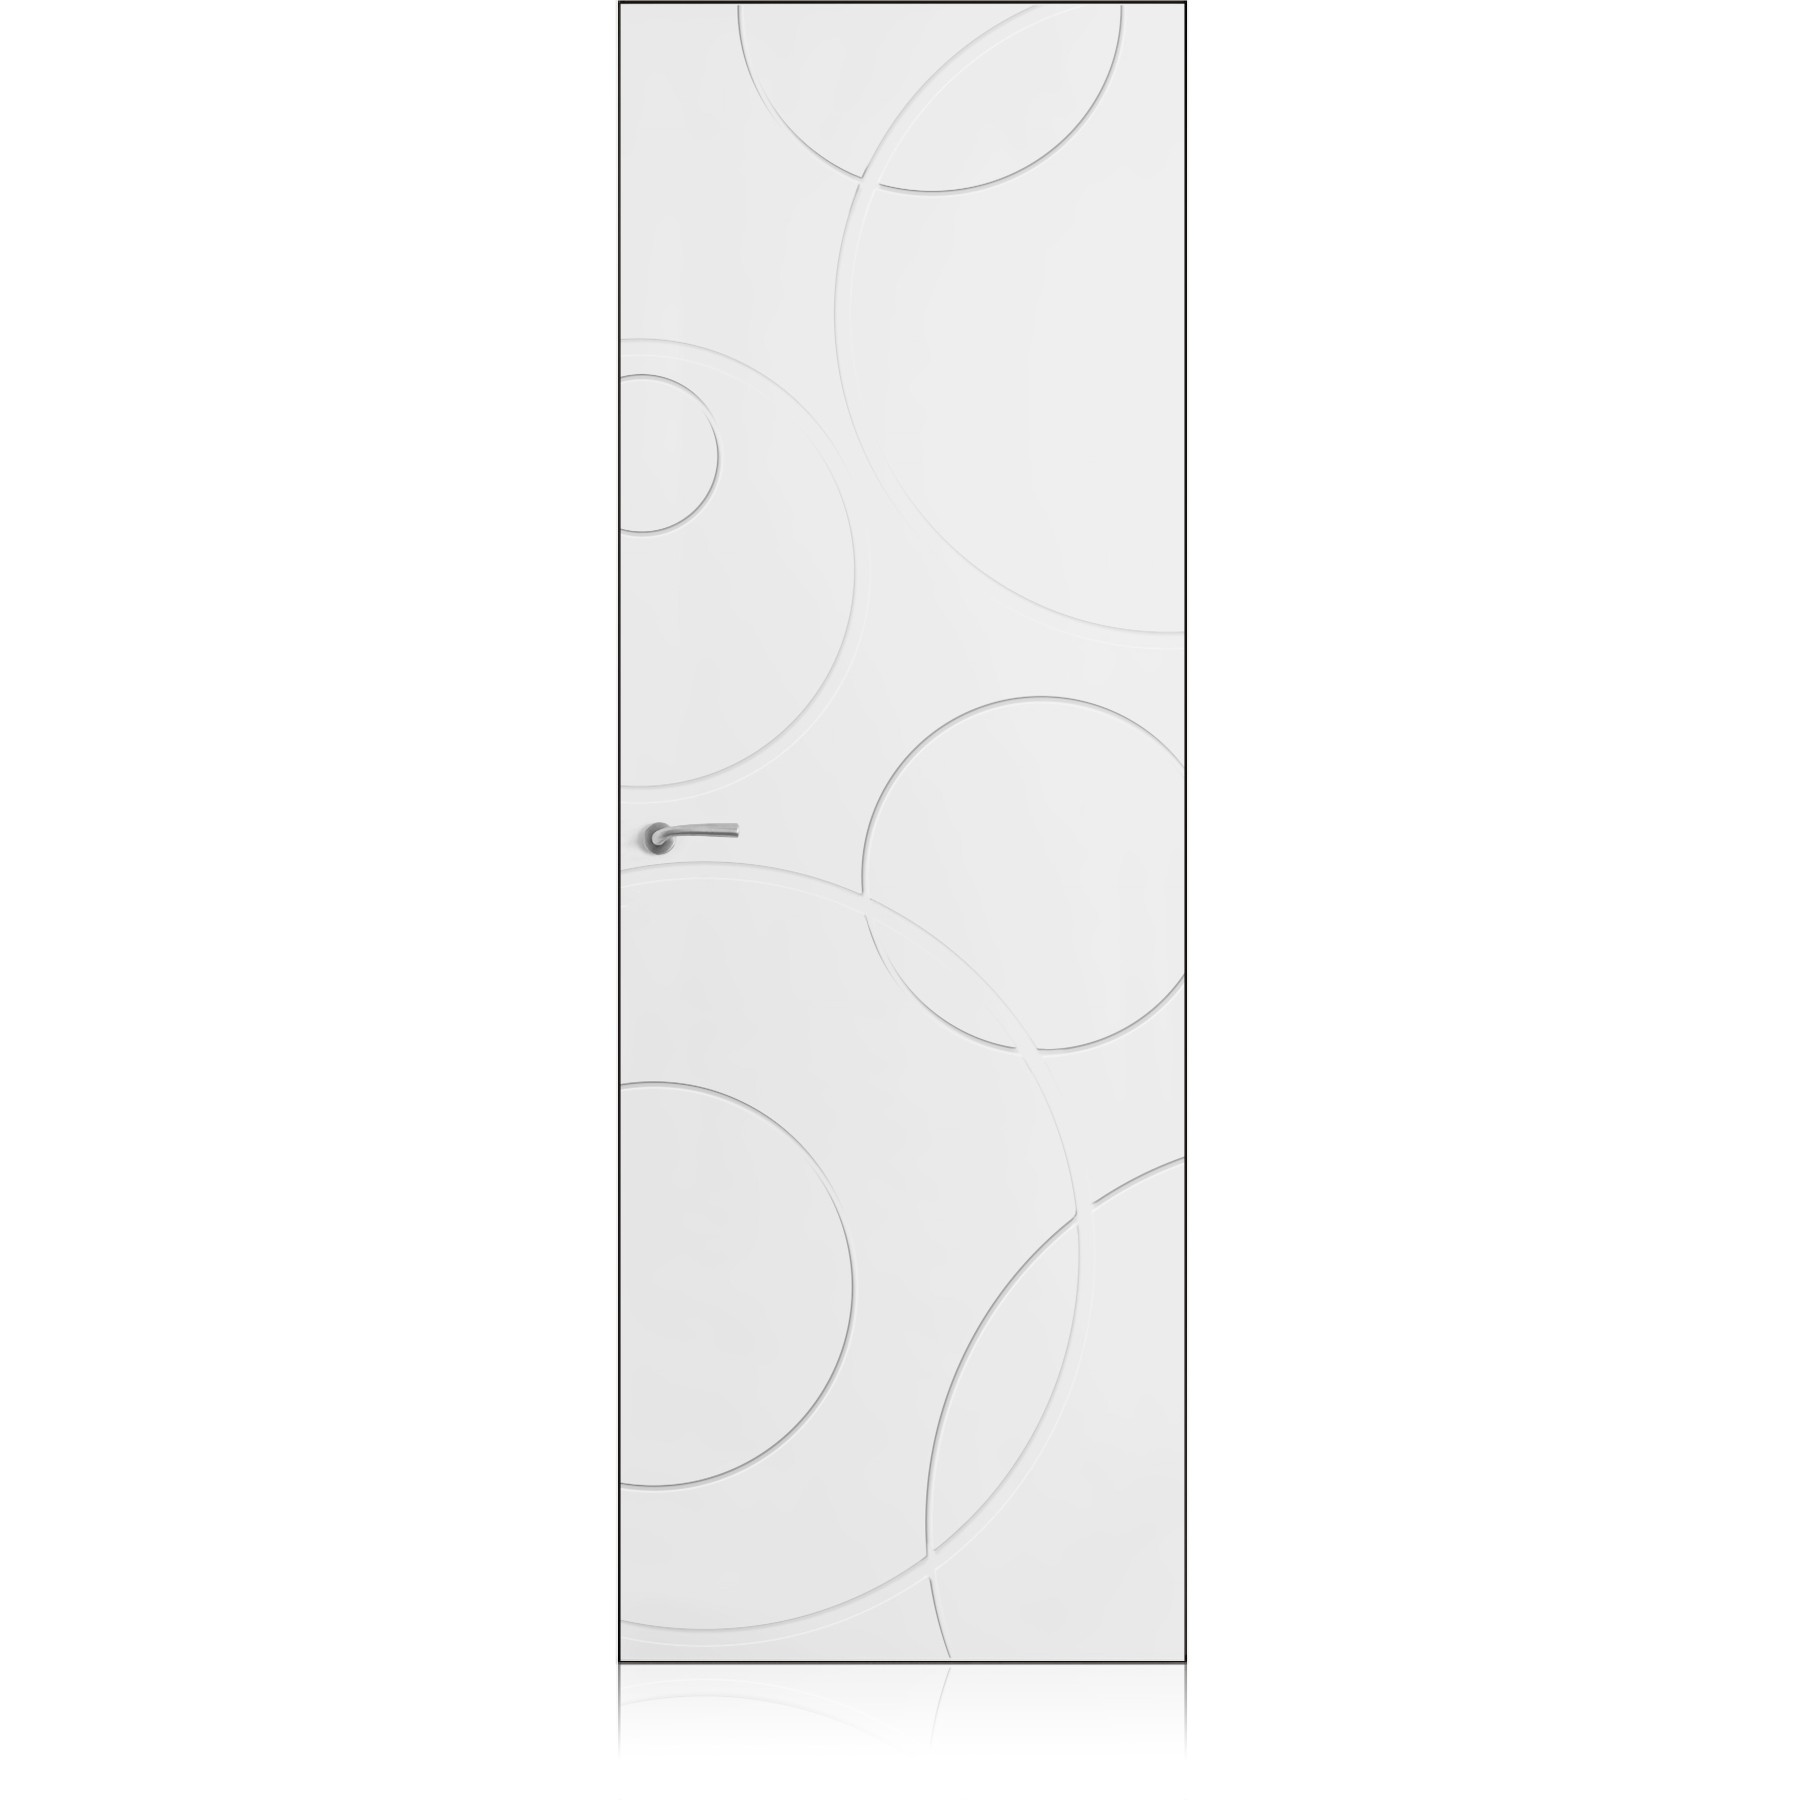 Yncisa/0 Zero bianco optical door